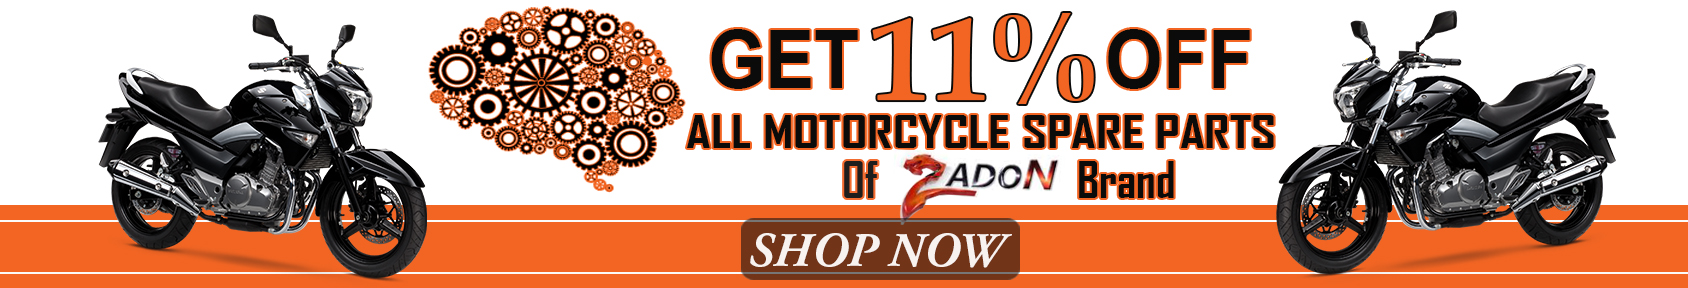 Special offers on Genuine Motorcycle Spare Parts And Accessories - Discount on Zadon Brand Spare Parts